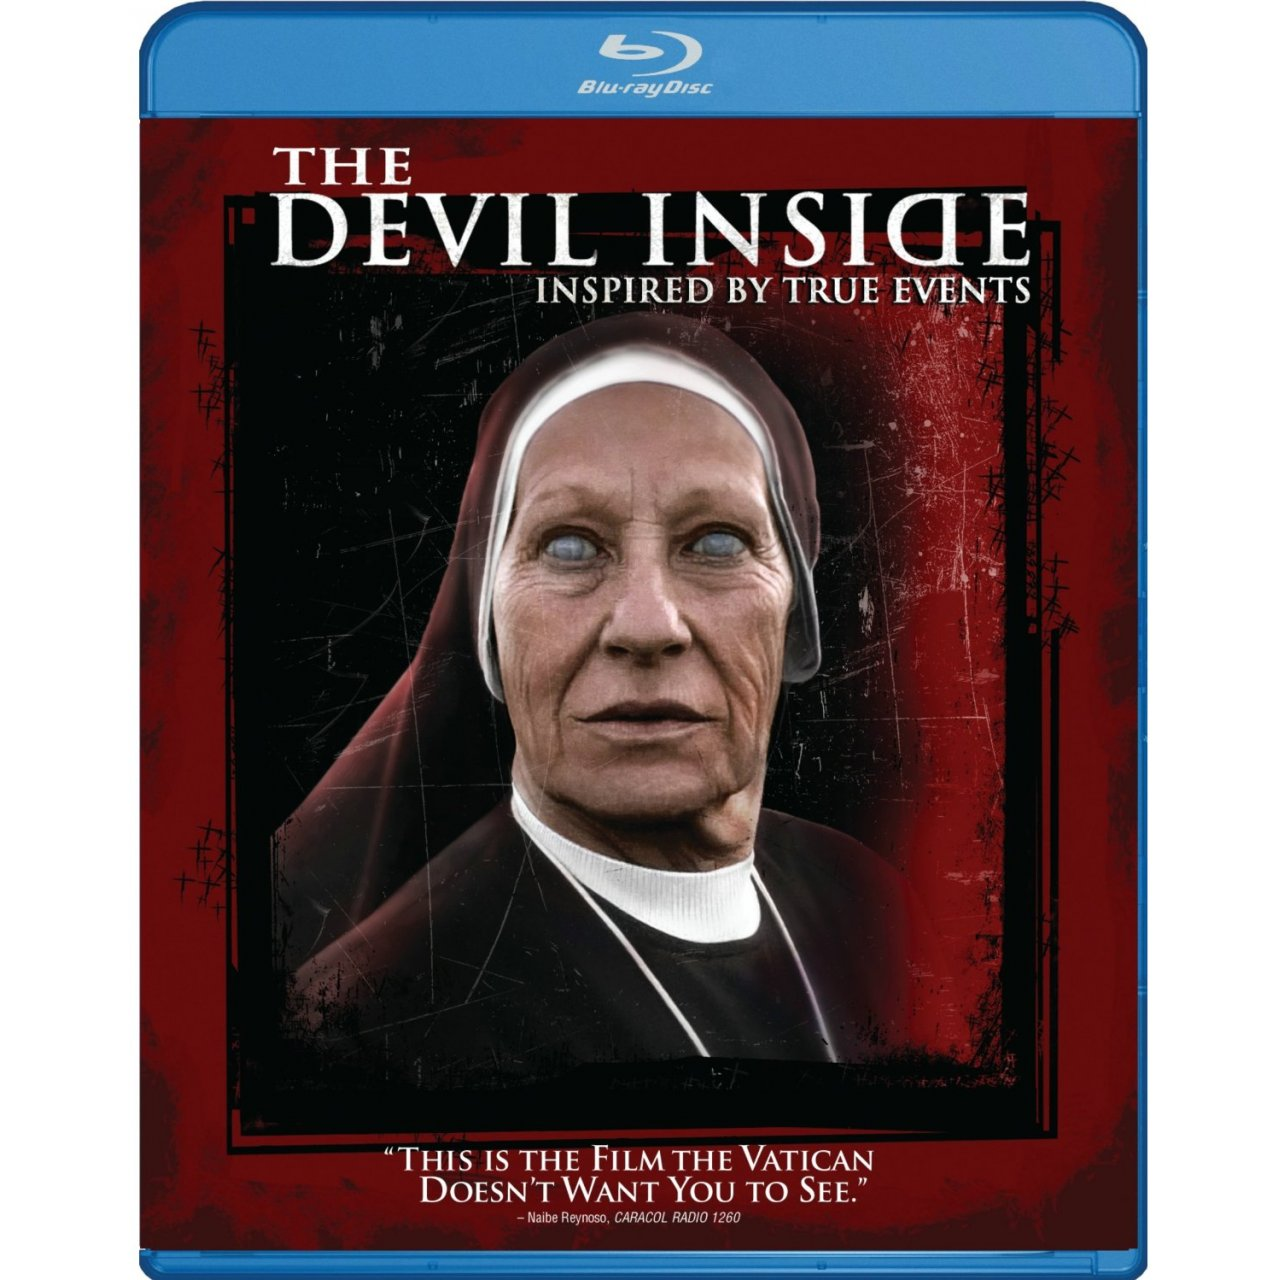 The Devil Inside in Bluray